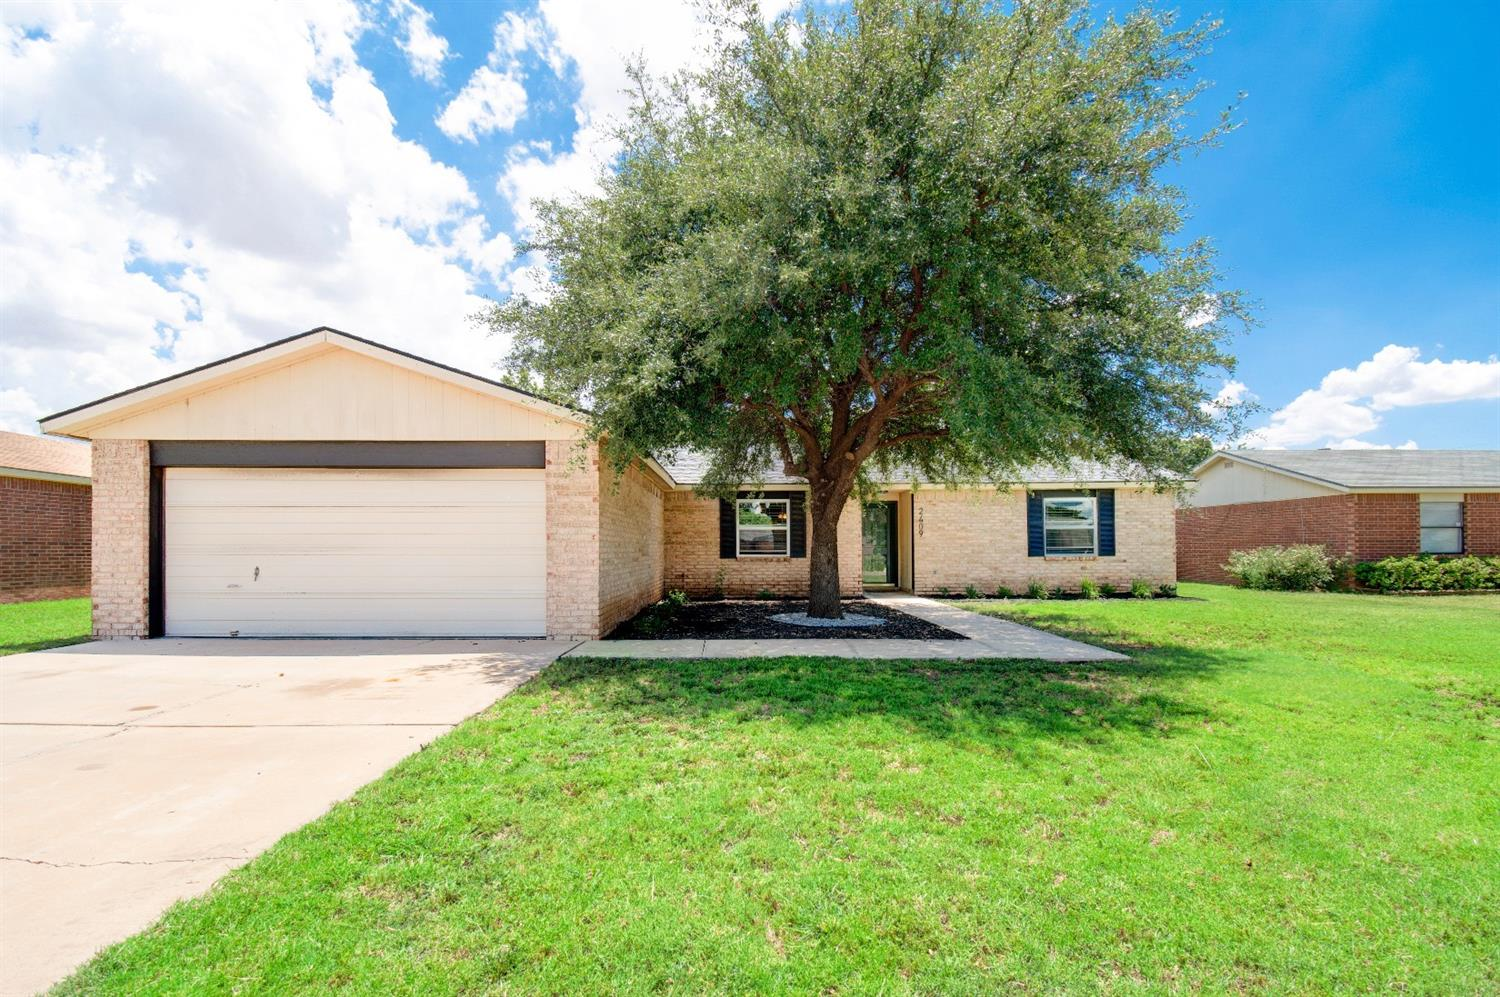 2409 93rd Place, Lubbock in Lubbock County, TX 79423 Home for Sale